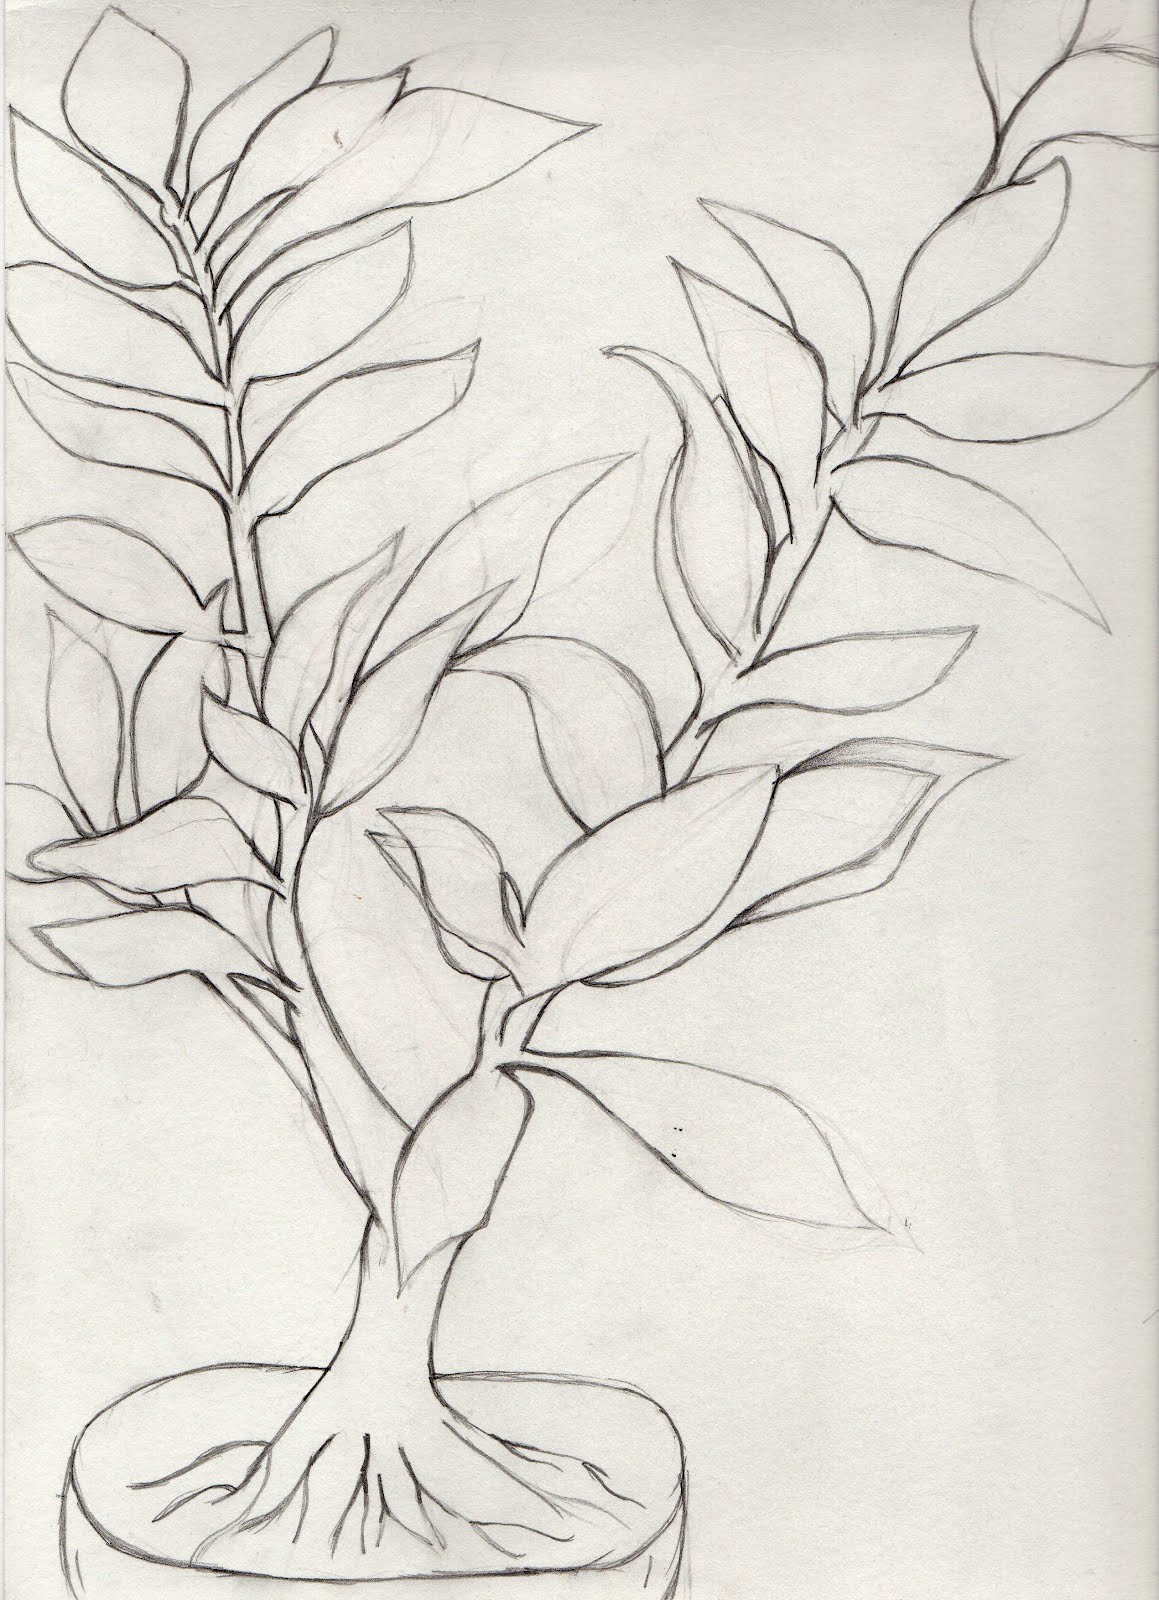 Contour Line Drawing Of A Plant : Deconstructing visual arts